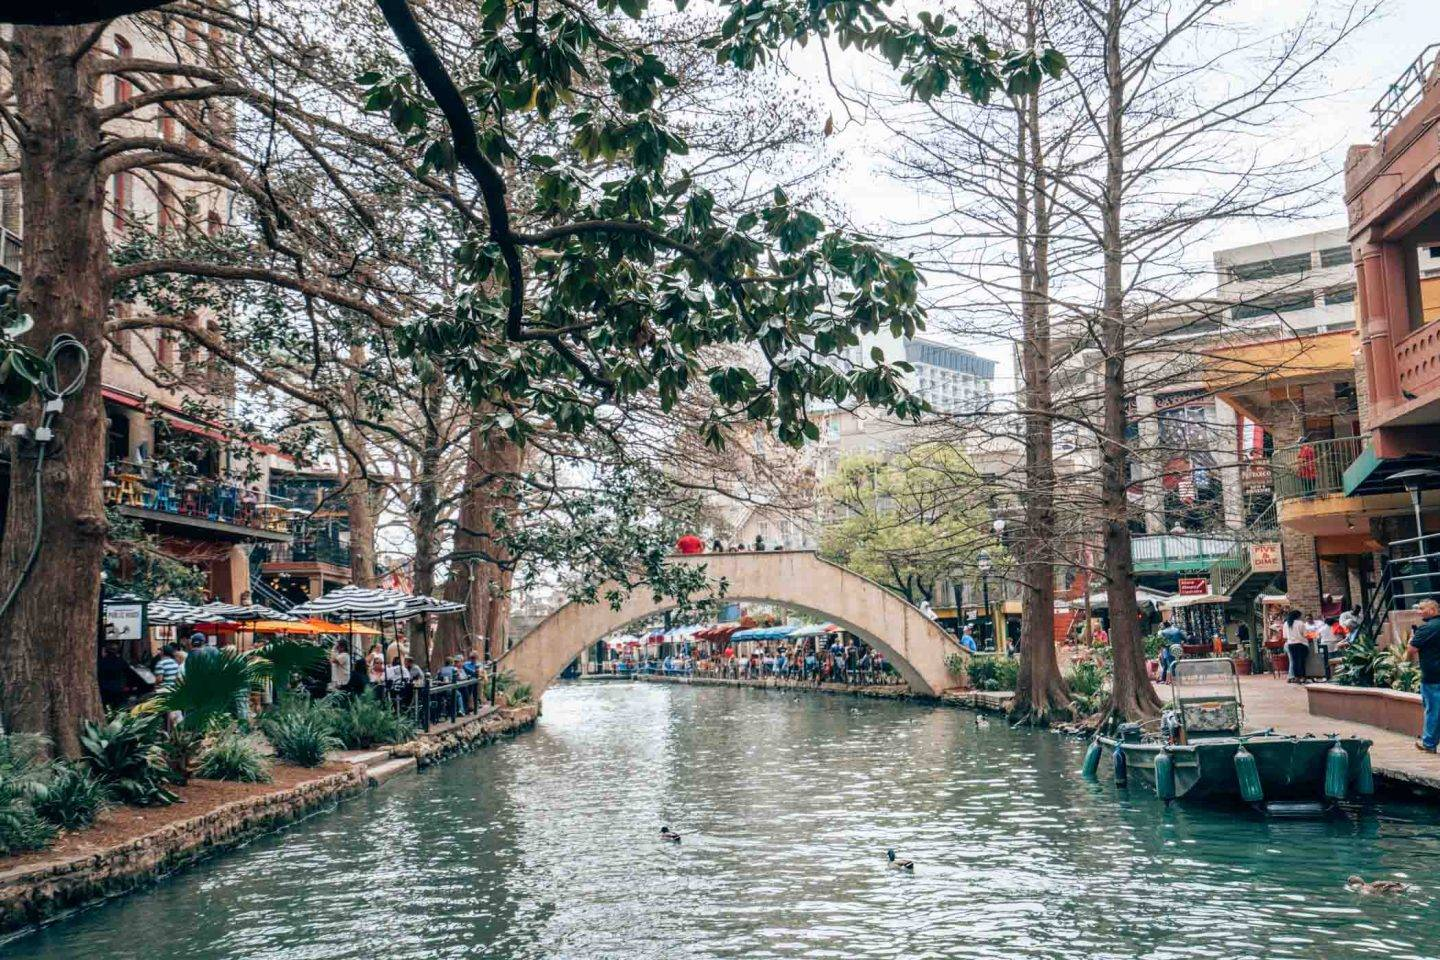 The Foodies Guide To San Antonio Texas